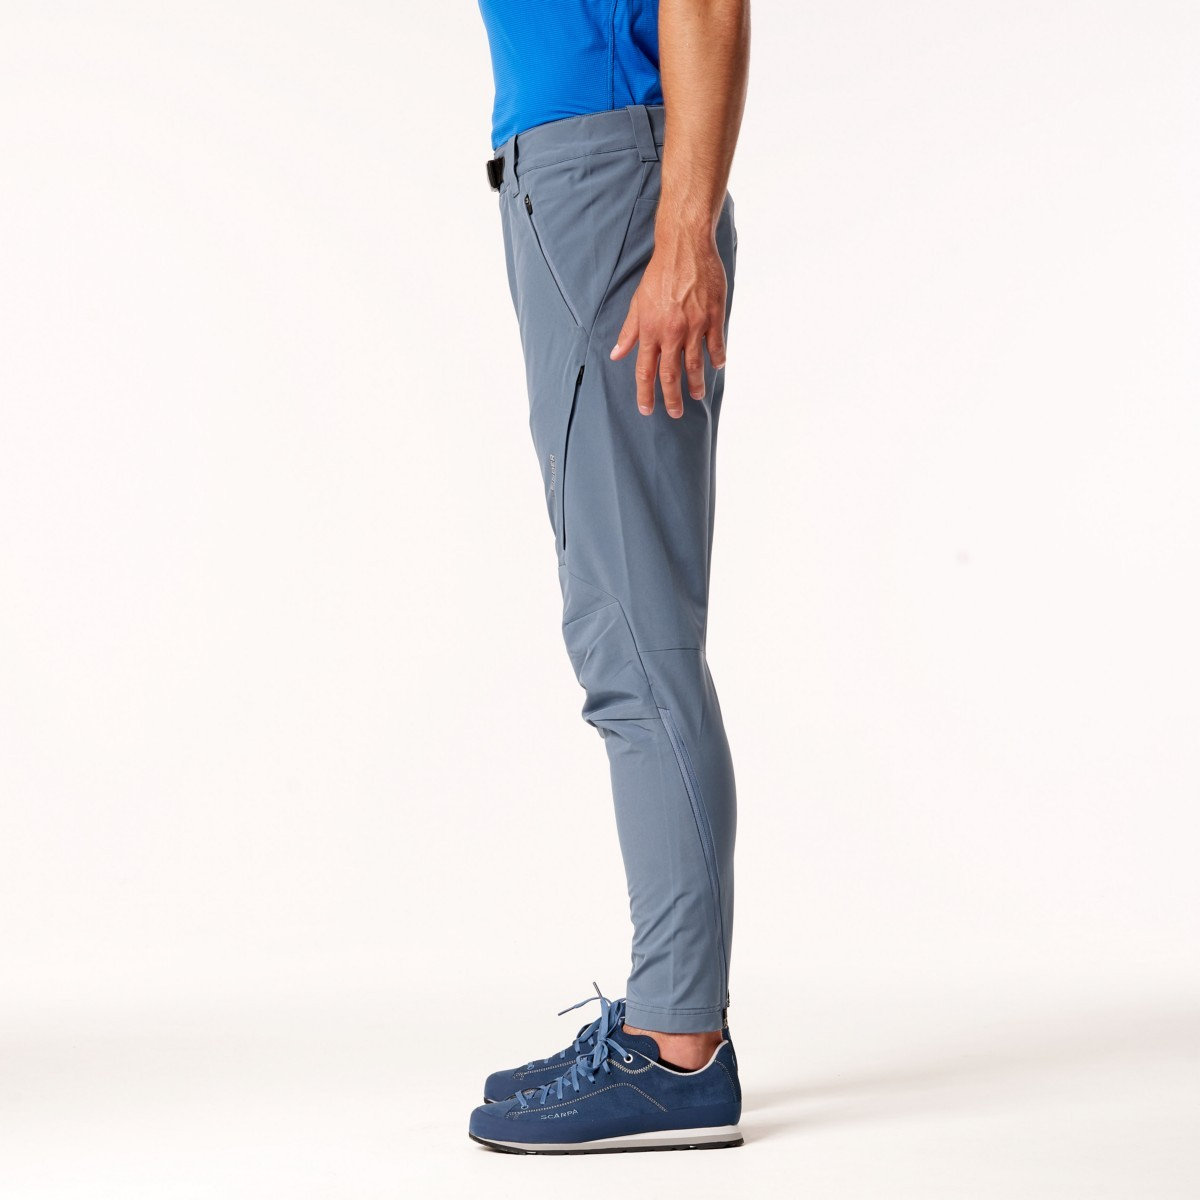 Men's softshell trousers